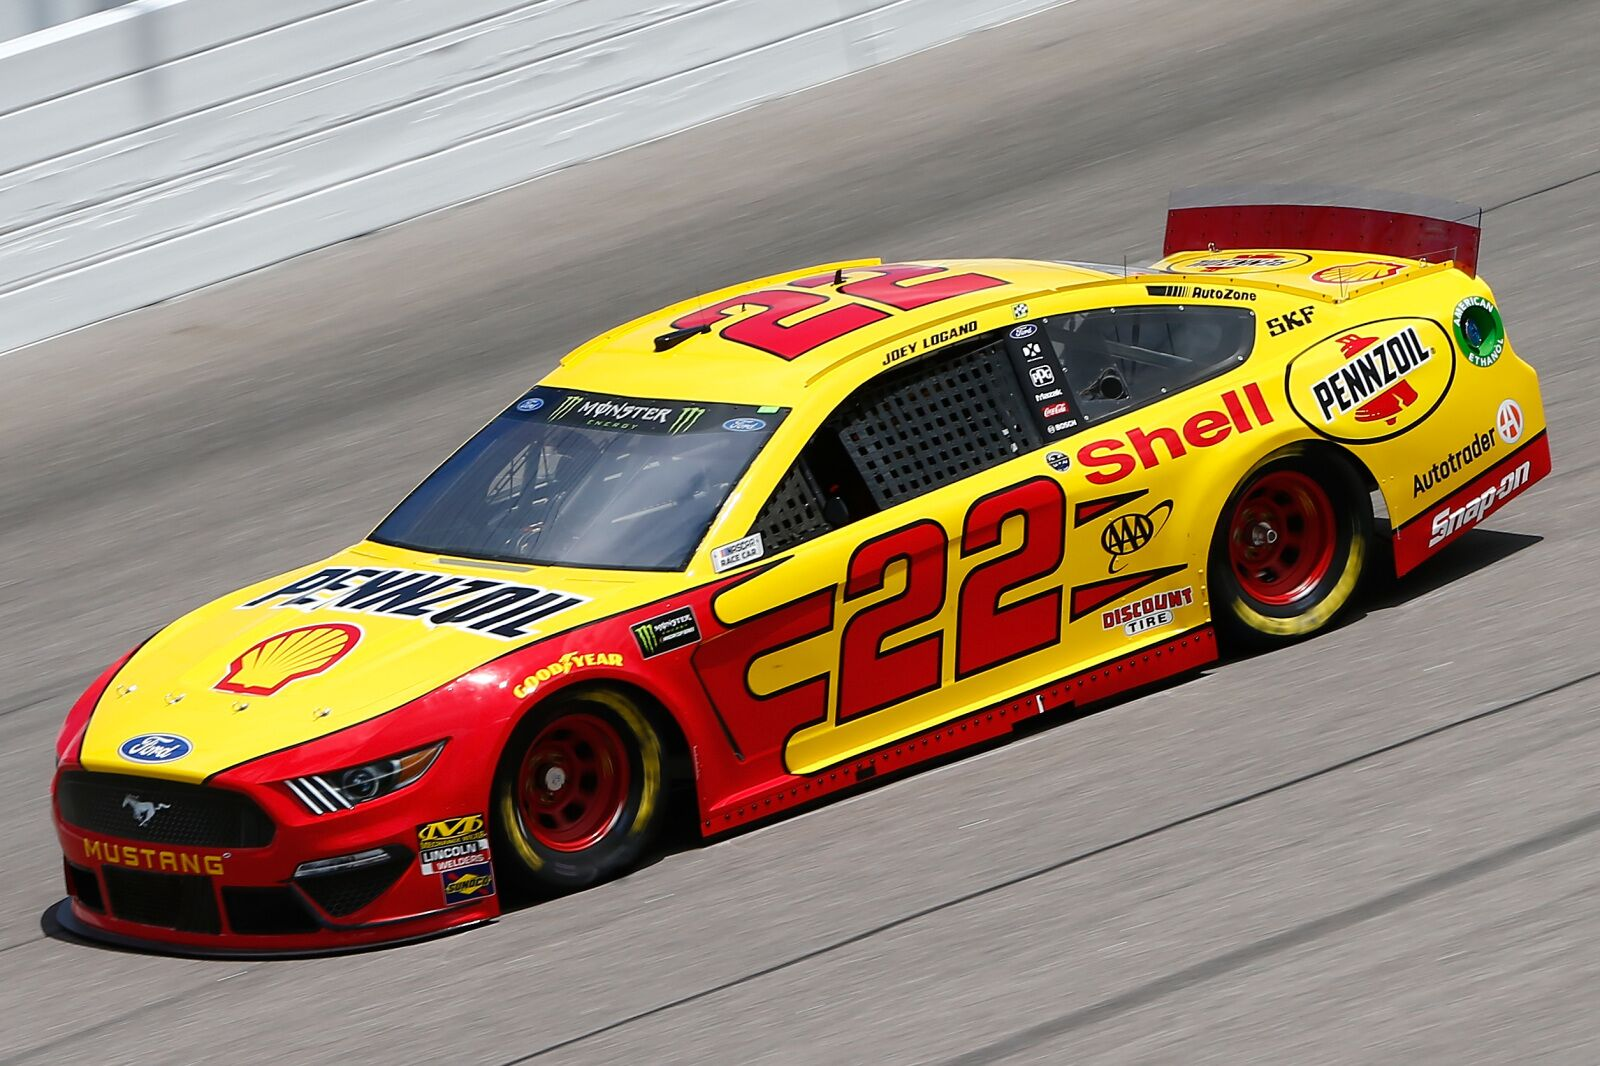 NASCAR driver Joey Logano and family mourning their Frenchie